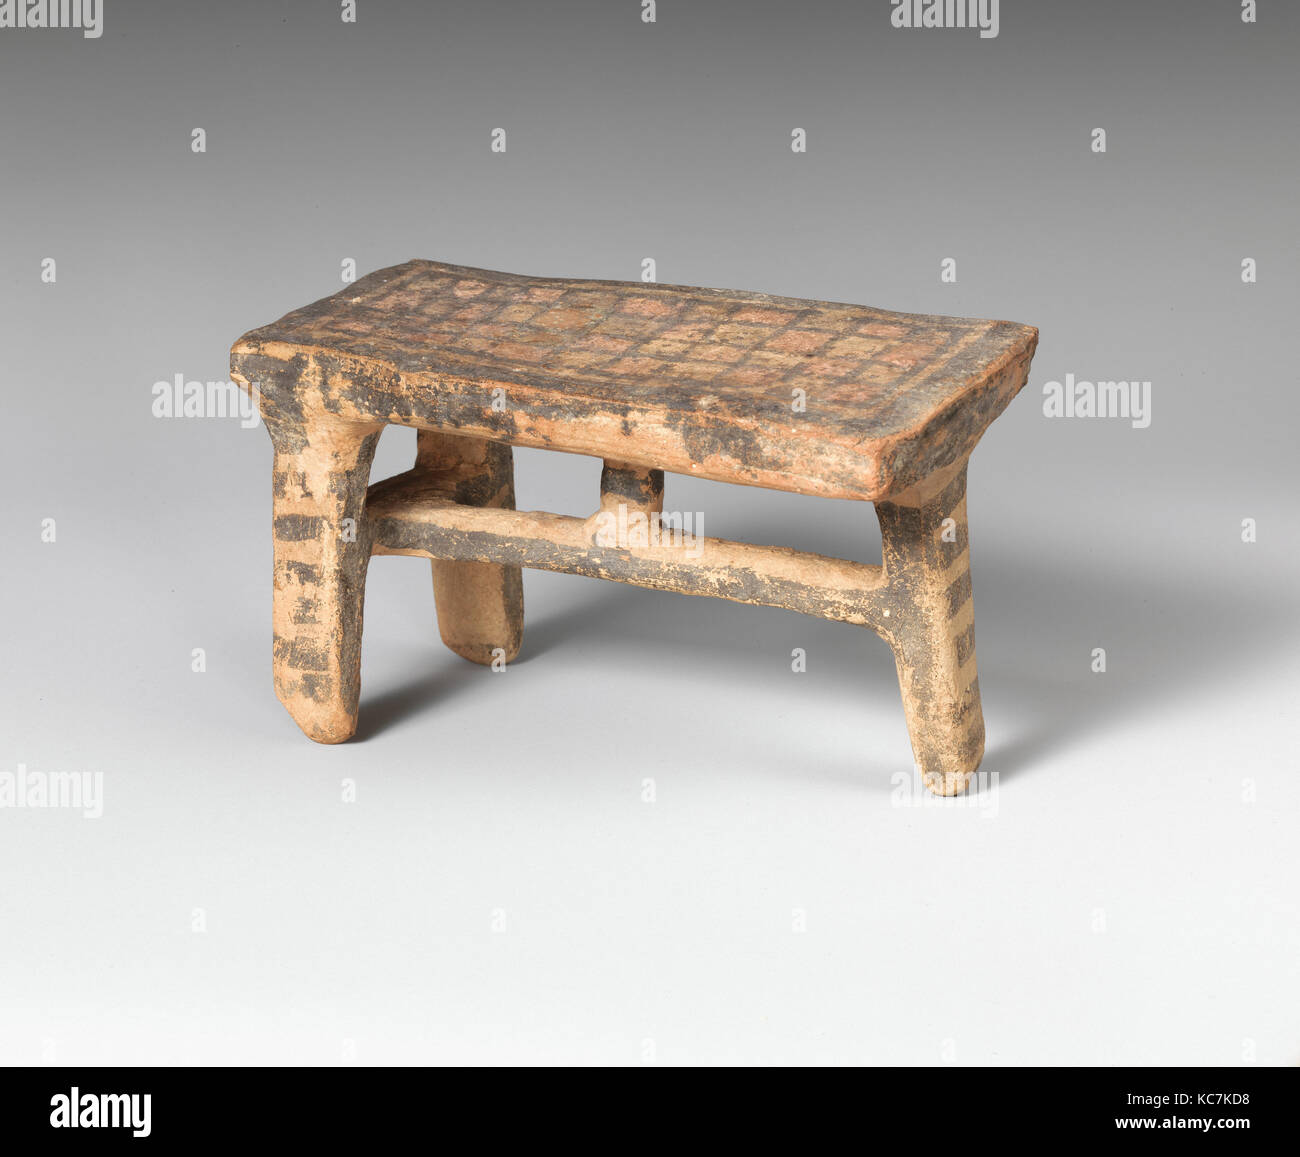 Terracotta table, Cypro-Archaic II, ca. 600–480 B.C., Cypriot, Terracotta; hand-made, H. 2 7/8 in. (7.3 cm), Terracottas - Stock Image